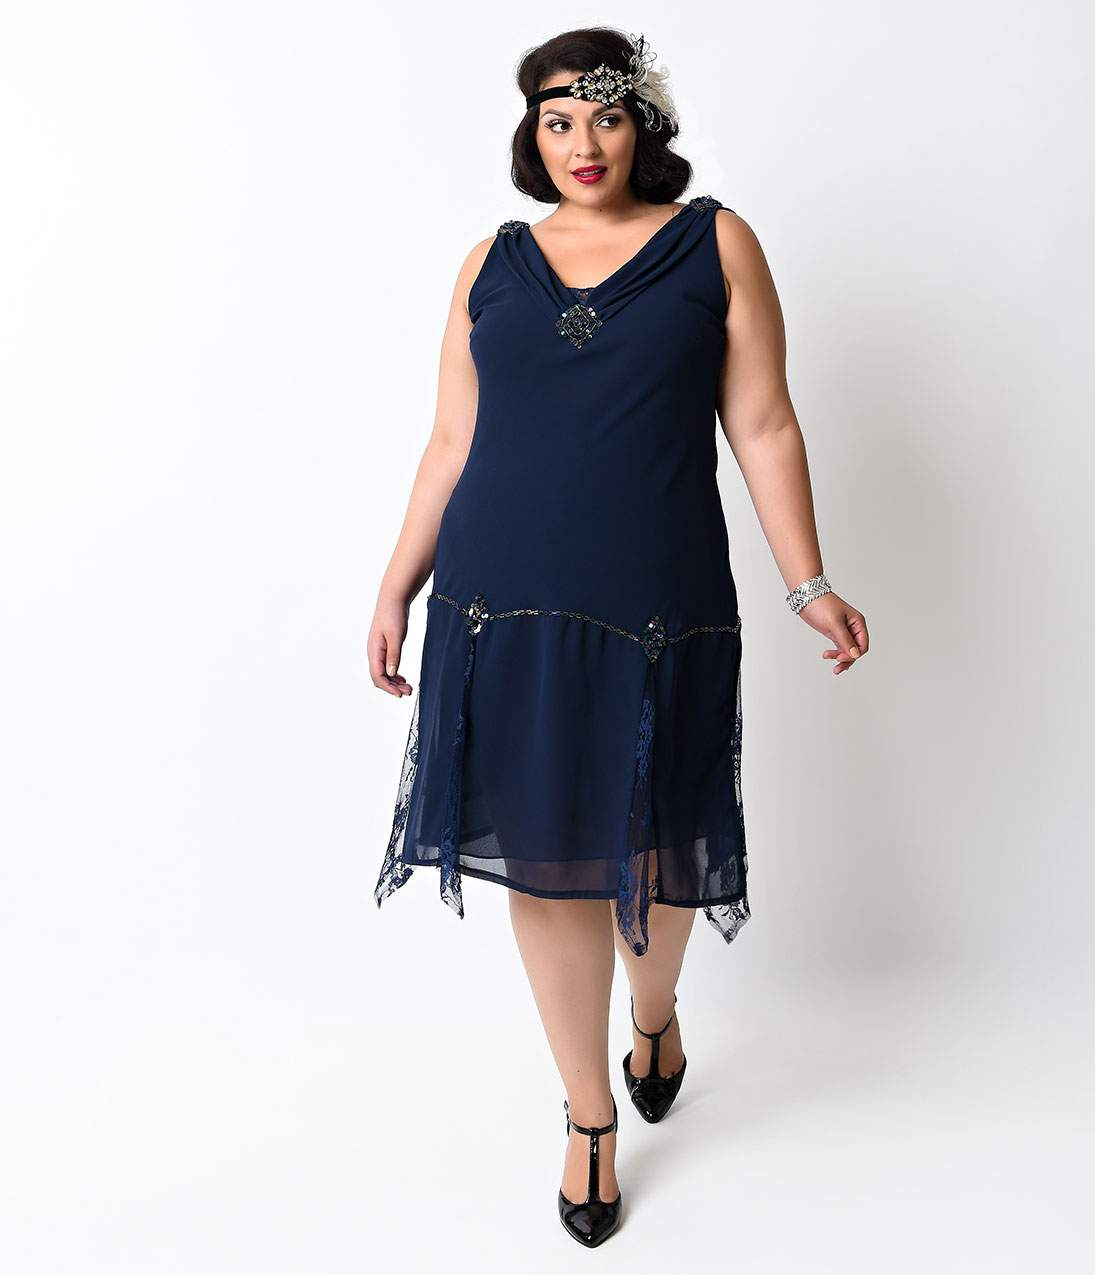 1920s Afternoon Dresses, Tea Dresses Unique Vintage Plus Size Navy Hemingway Flapper Dress $56.00 AT vintagedancer.com